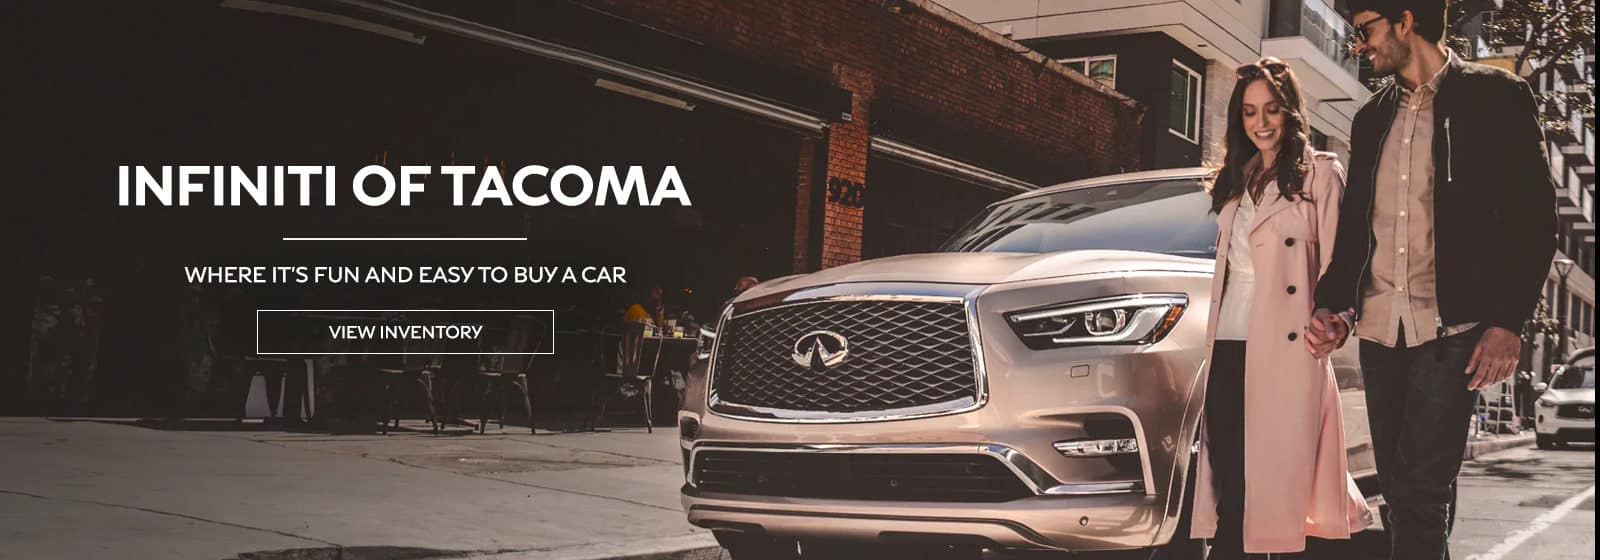 INFINITI of Tacoma Where it's fun and easy to buy a car -view inventory-